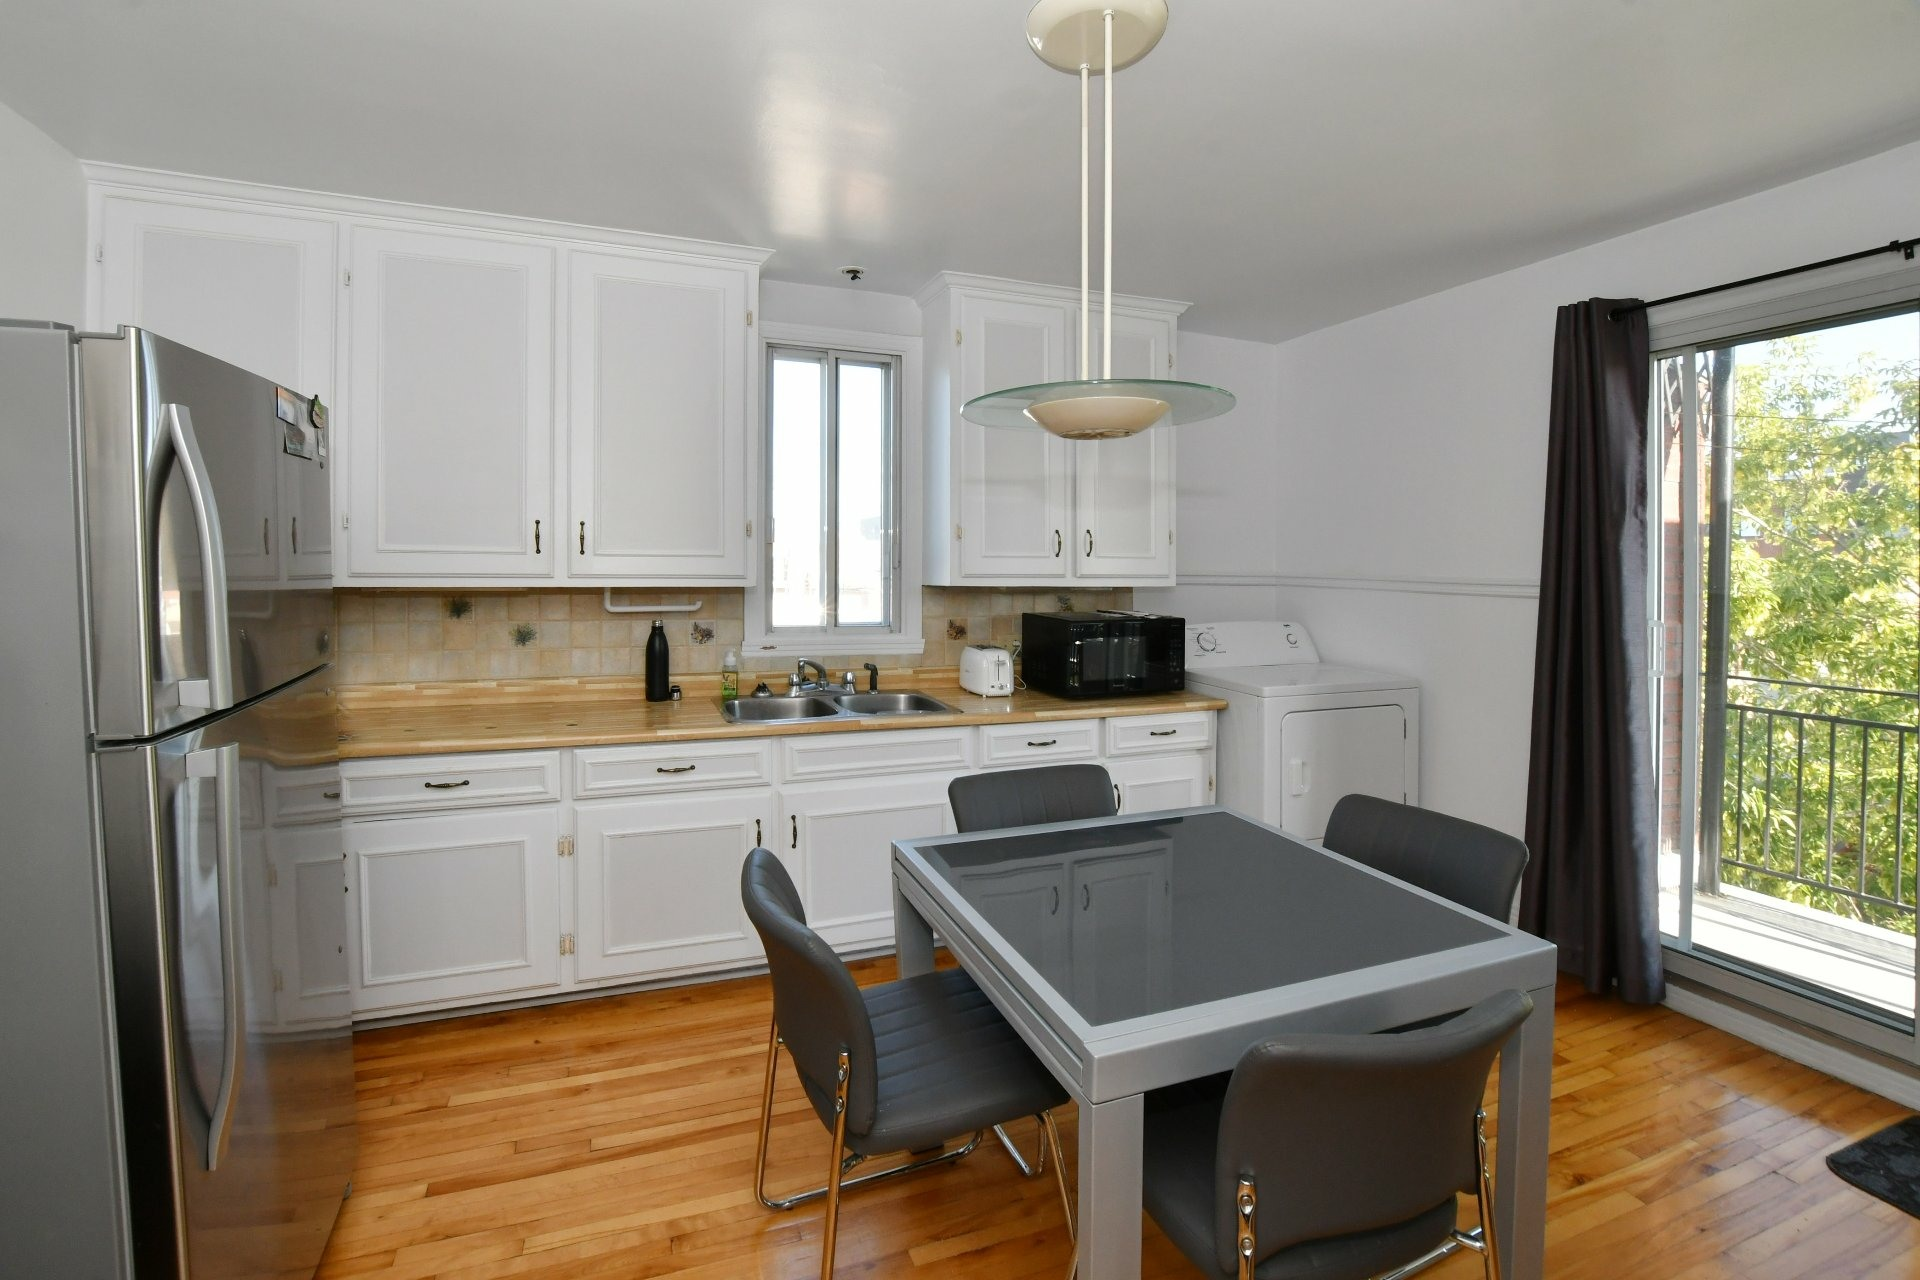 image 2 - Income property For sale Villeray/Saint-Michel/Parc-Extension Montréal  - 4 rooms